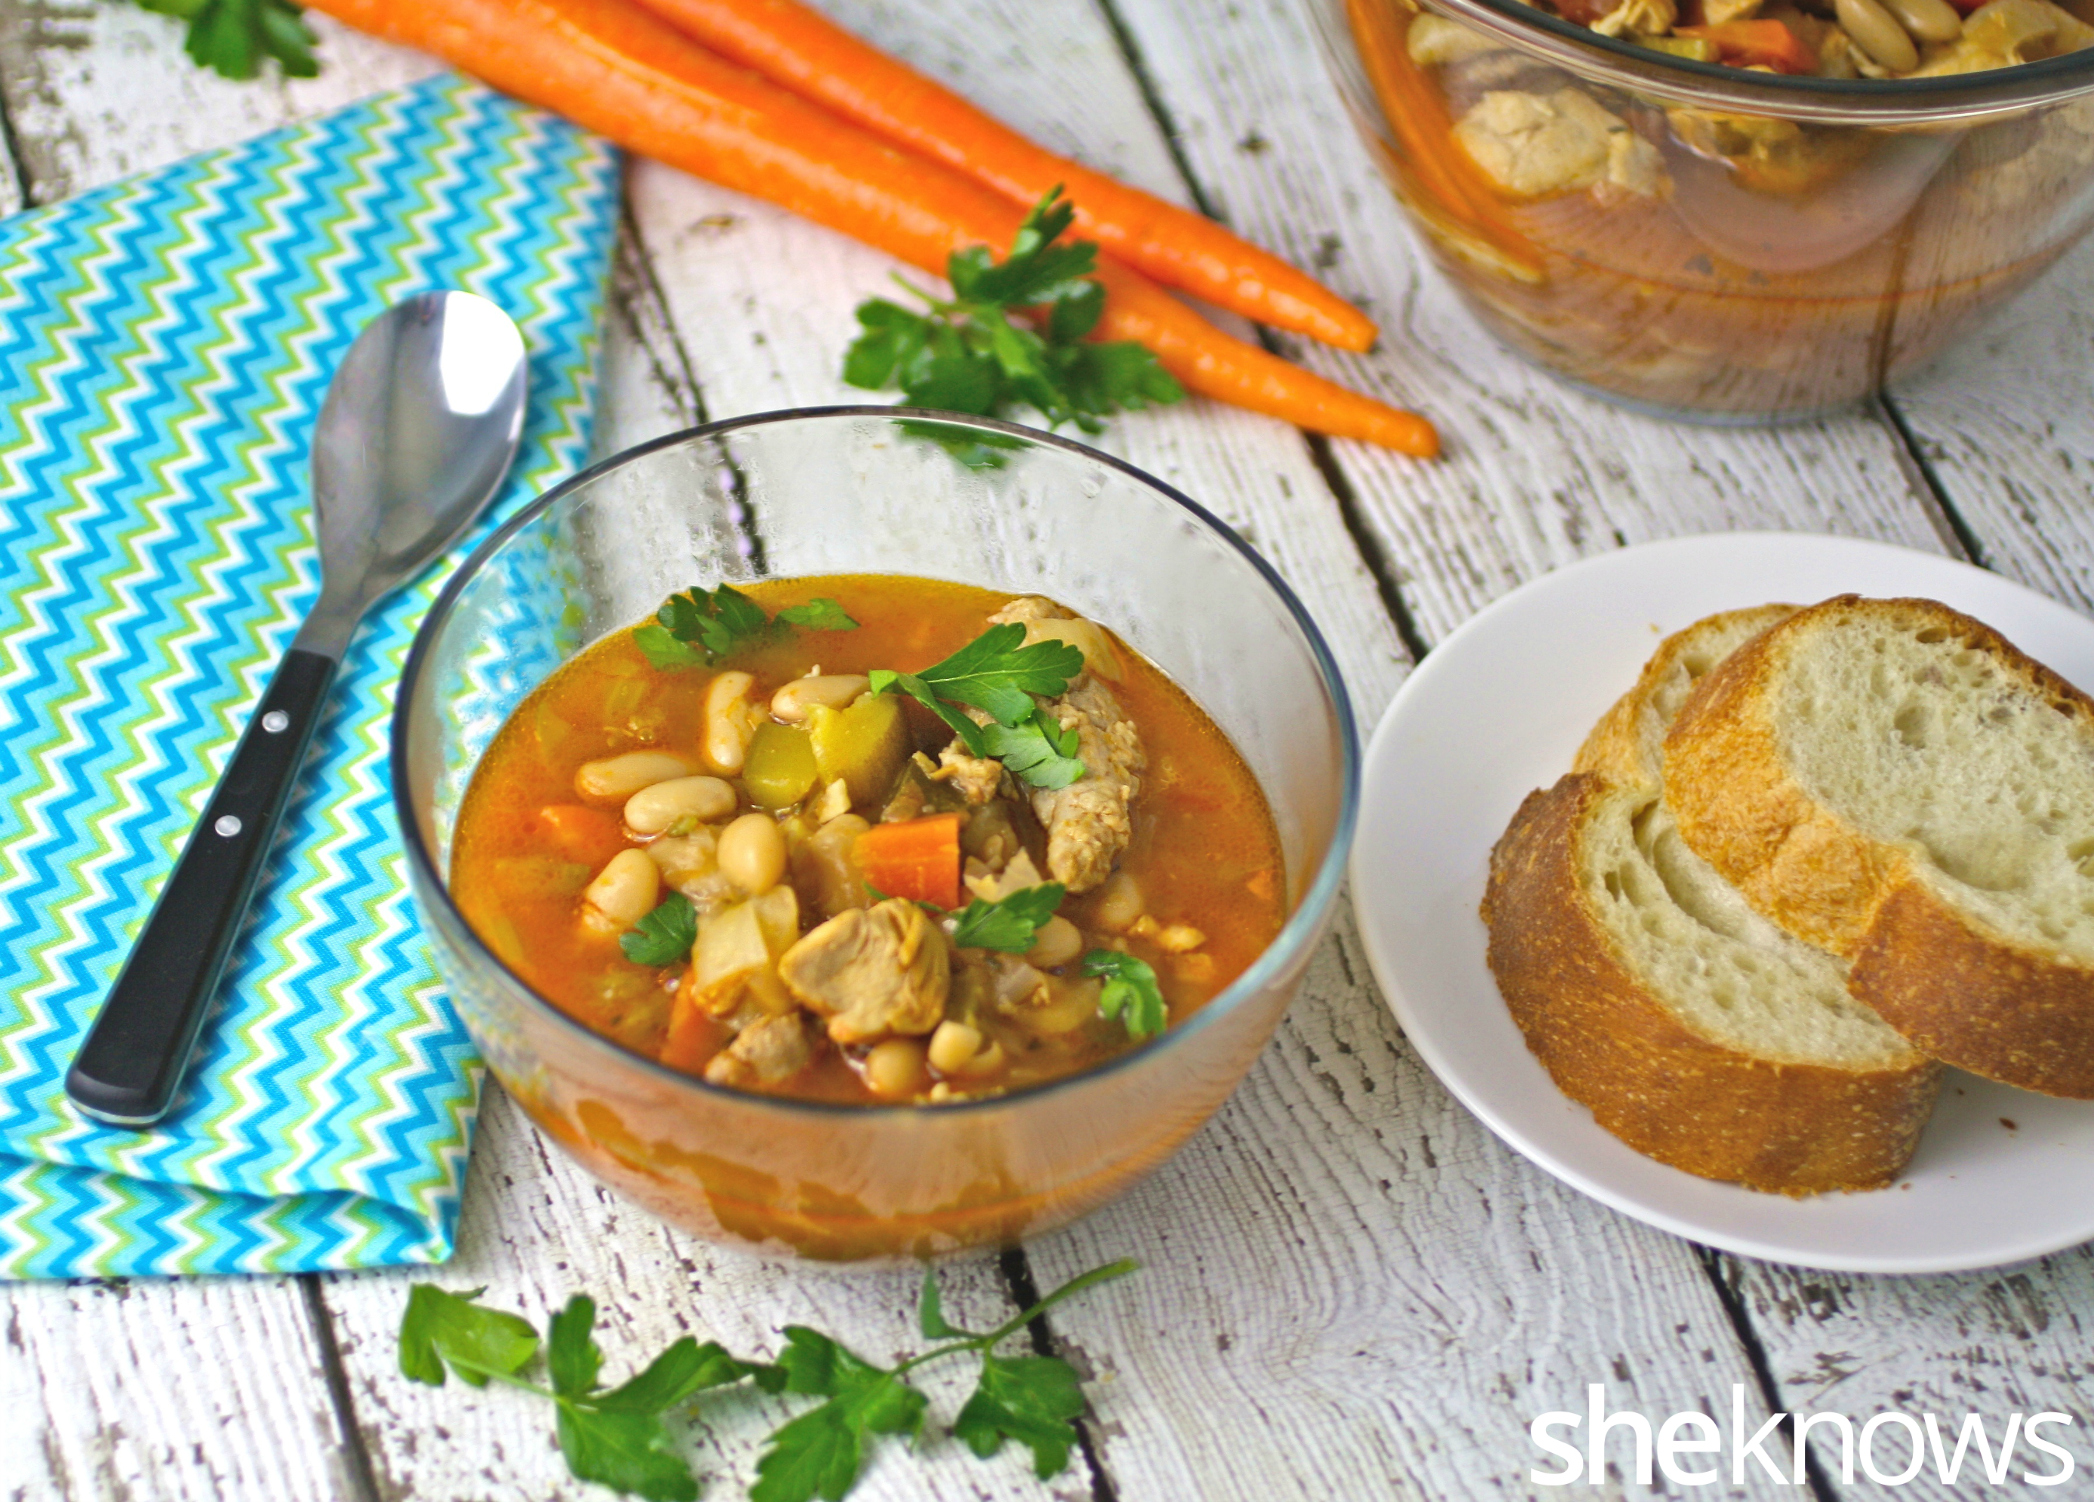 This recipe for Slow cooker Sunday chicken and sausage cassoulet is filled with flavor